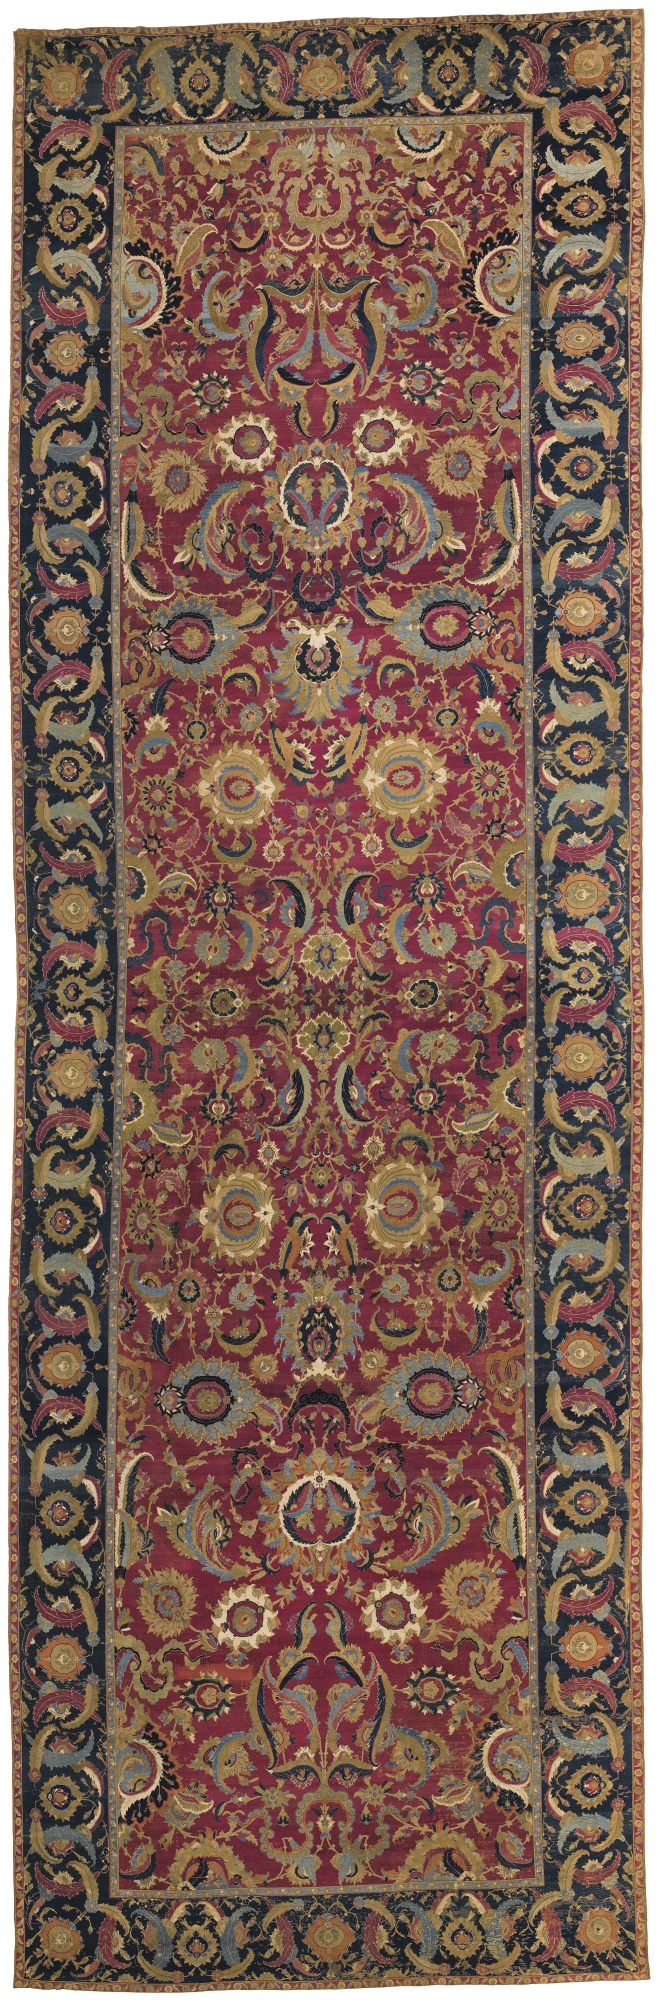 The Lafões Esfahan carpet, central Persia, second half 17th century. 44ft. 3in. x 14ft. 2in. (13.49 x 4.32m.). Sotheby's New York, 5th June, lot 19, estimate, $800,000 - 1,200,000, sold $4,645,000